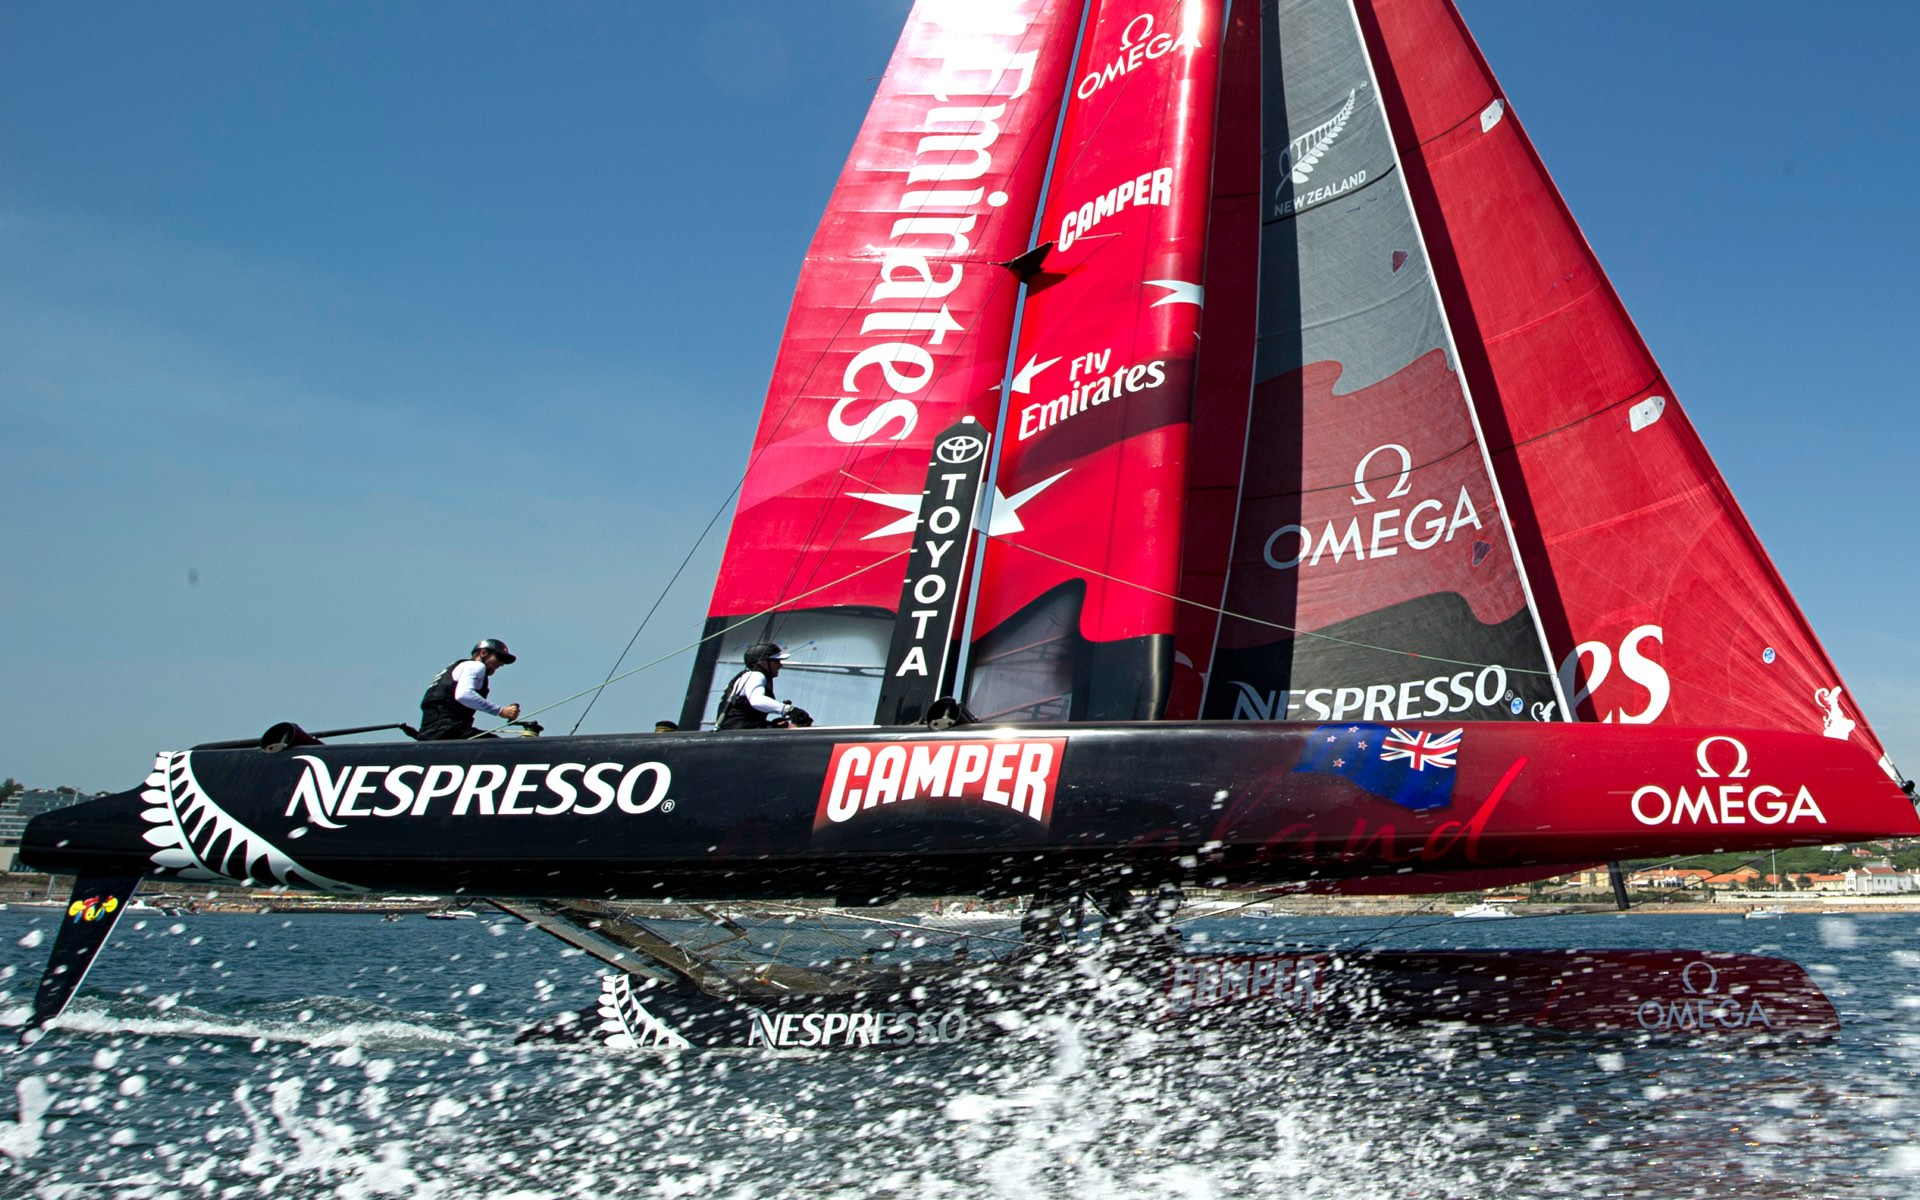 Emirates Team New Zealand in action in Americas Cup foiling catamarans capable of 40+ knots (75 km/h+)